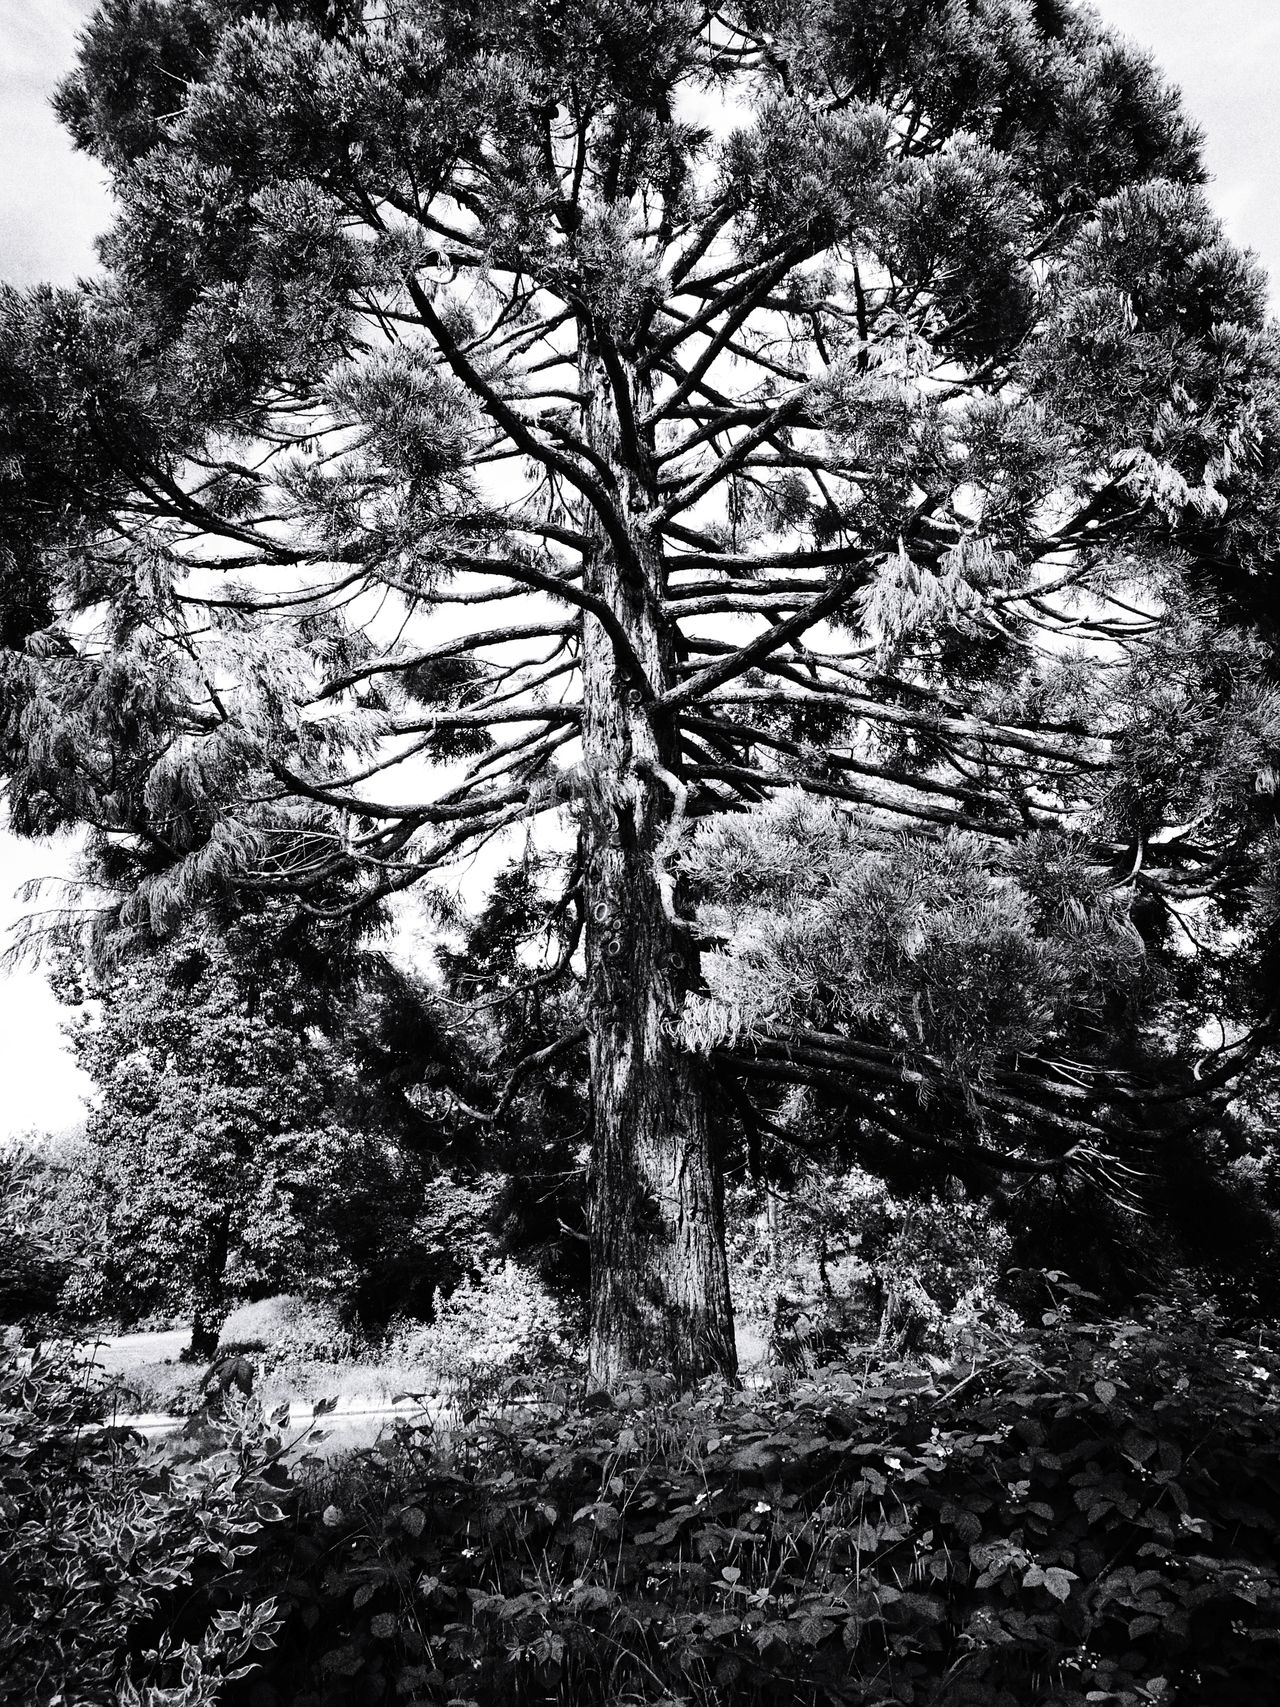 Tree Nature Day Growth No People Low Angle View Outdoors Grass Branch Beauty In Nature Monochrome Photograhy Monochrome Collection Blackandwhite Photography B&W Collection B&WPhoto B&w Photo France🇫🇷 HuaweiP9Photography